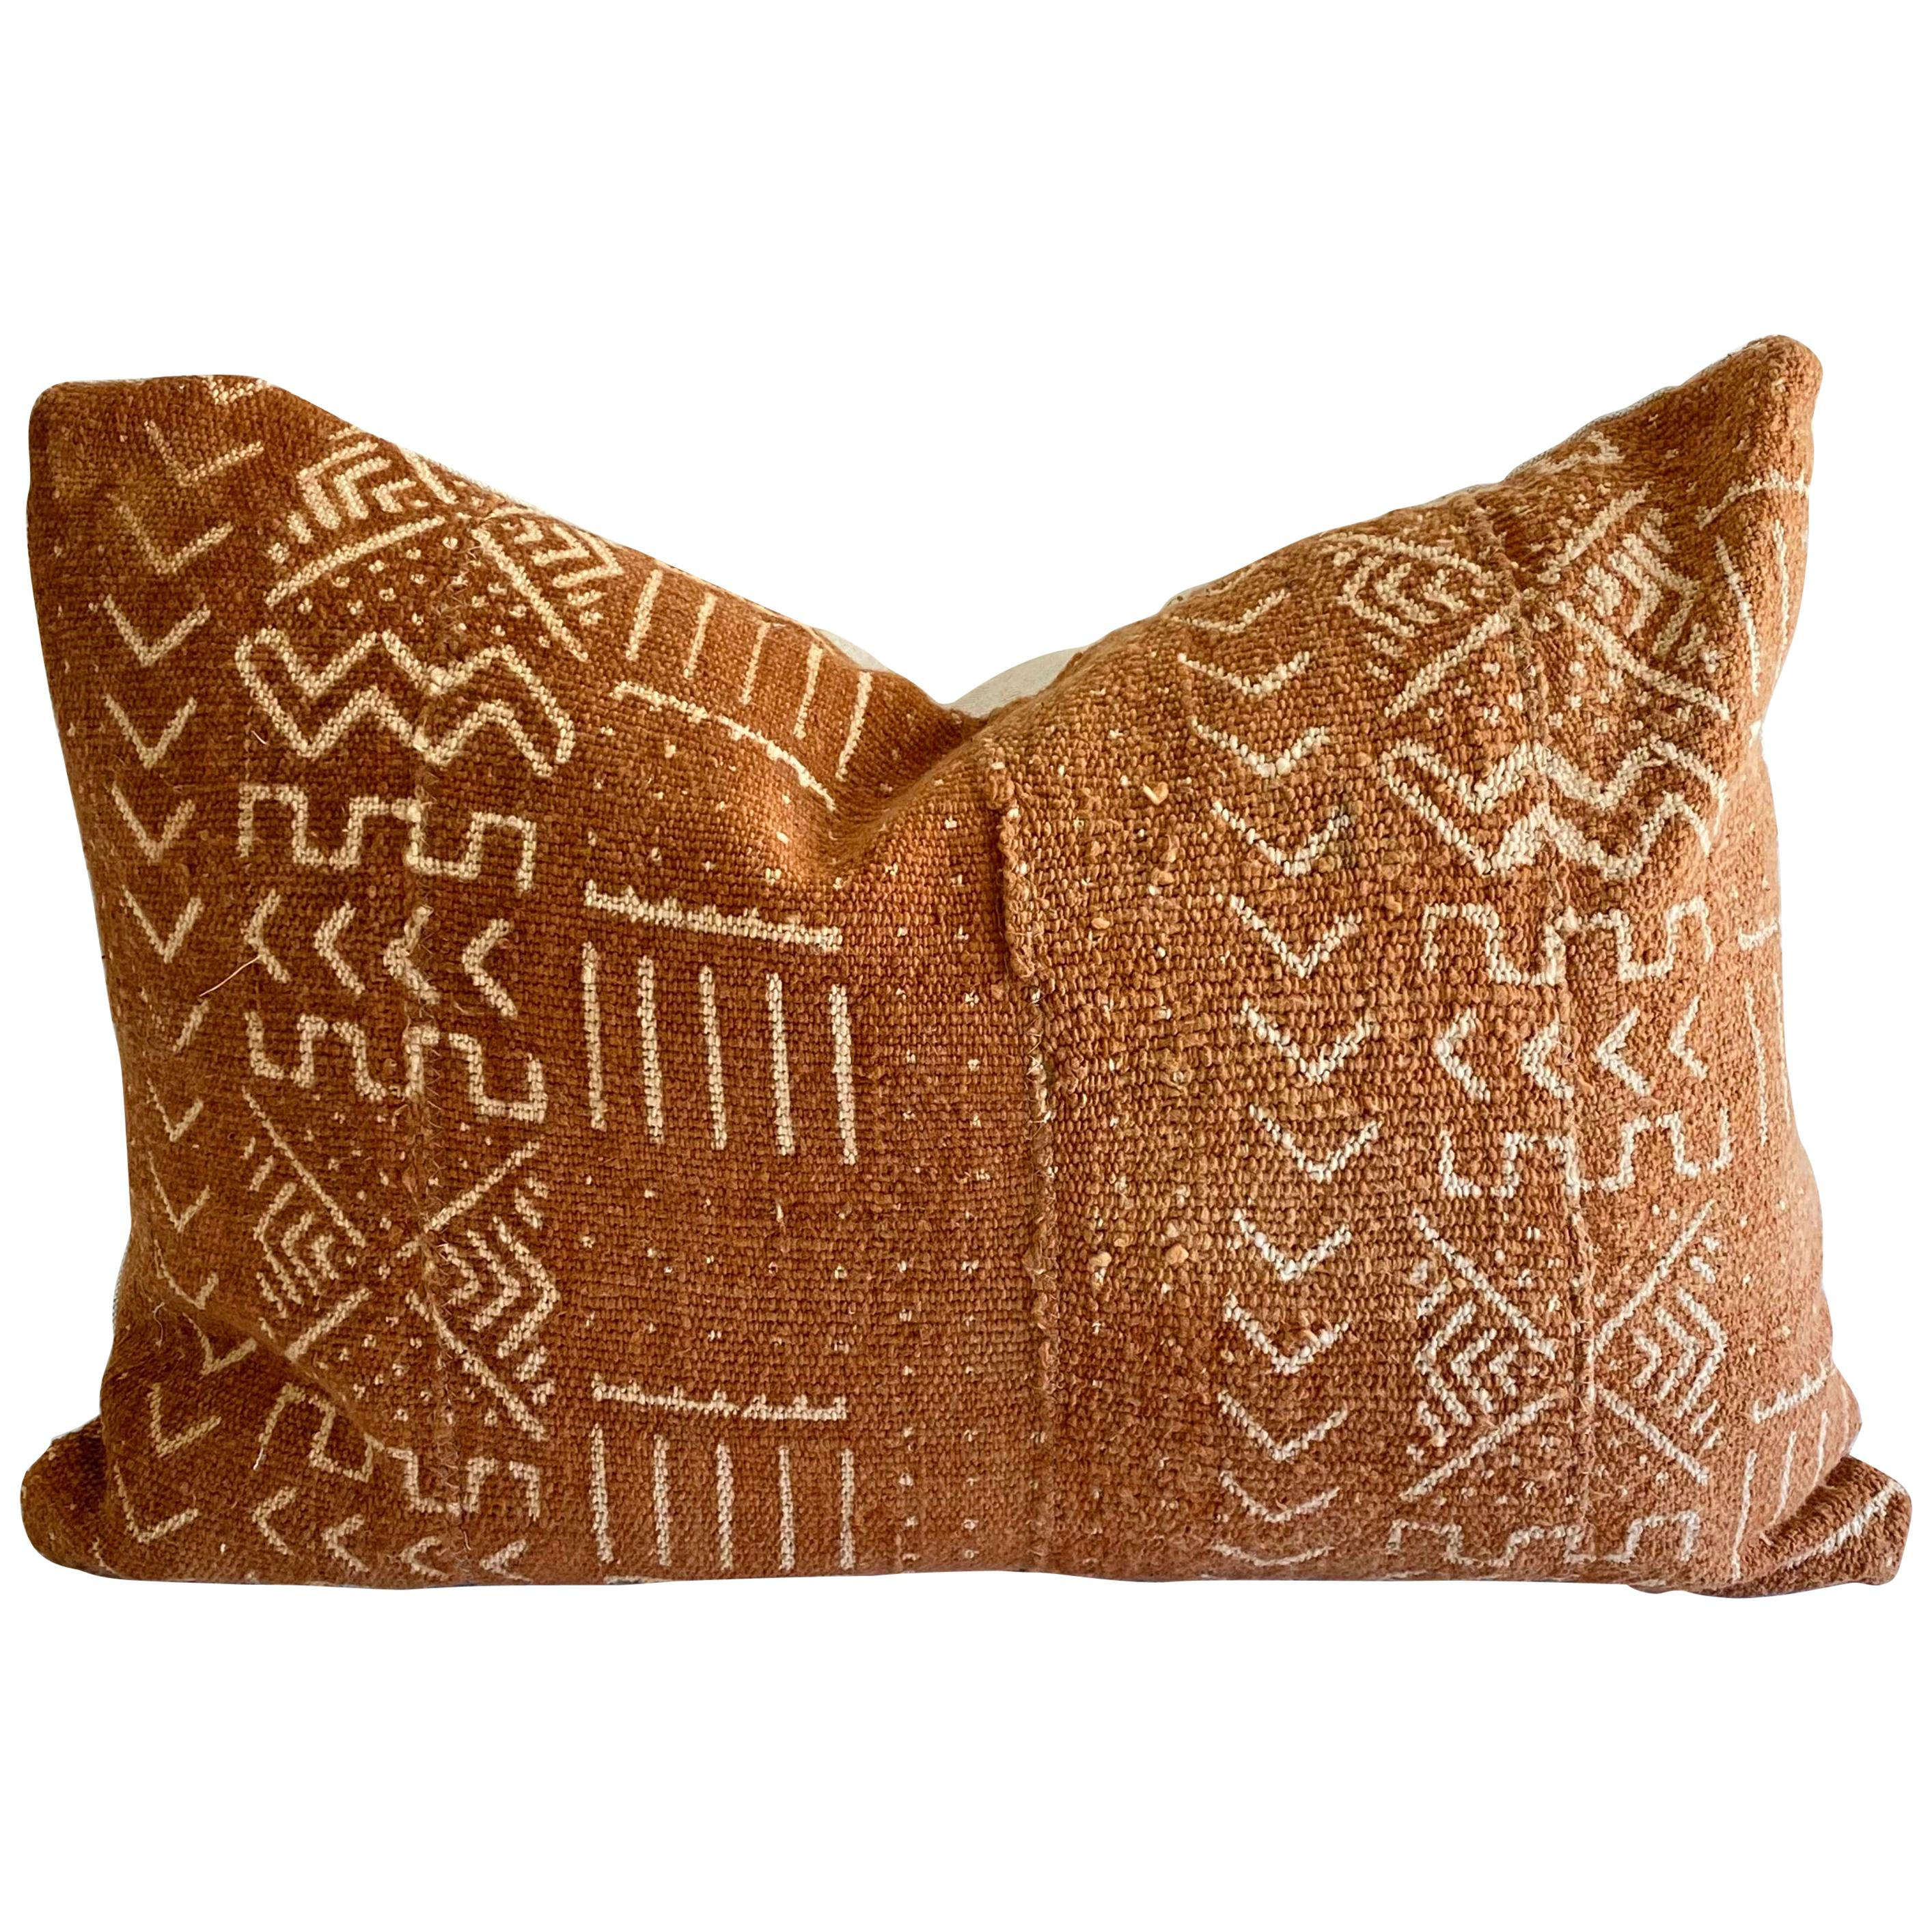 Vintage Mali Mud Cloth Lumbar Pillow with Down Feather Insert